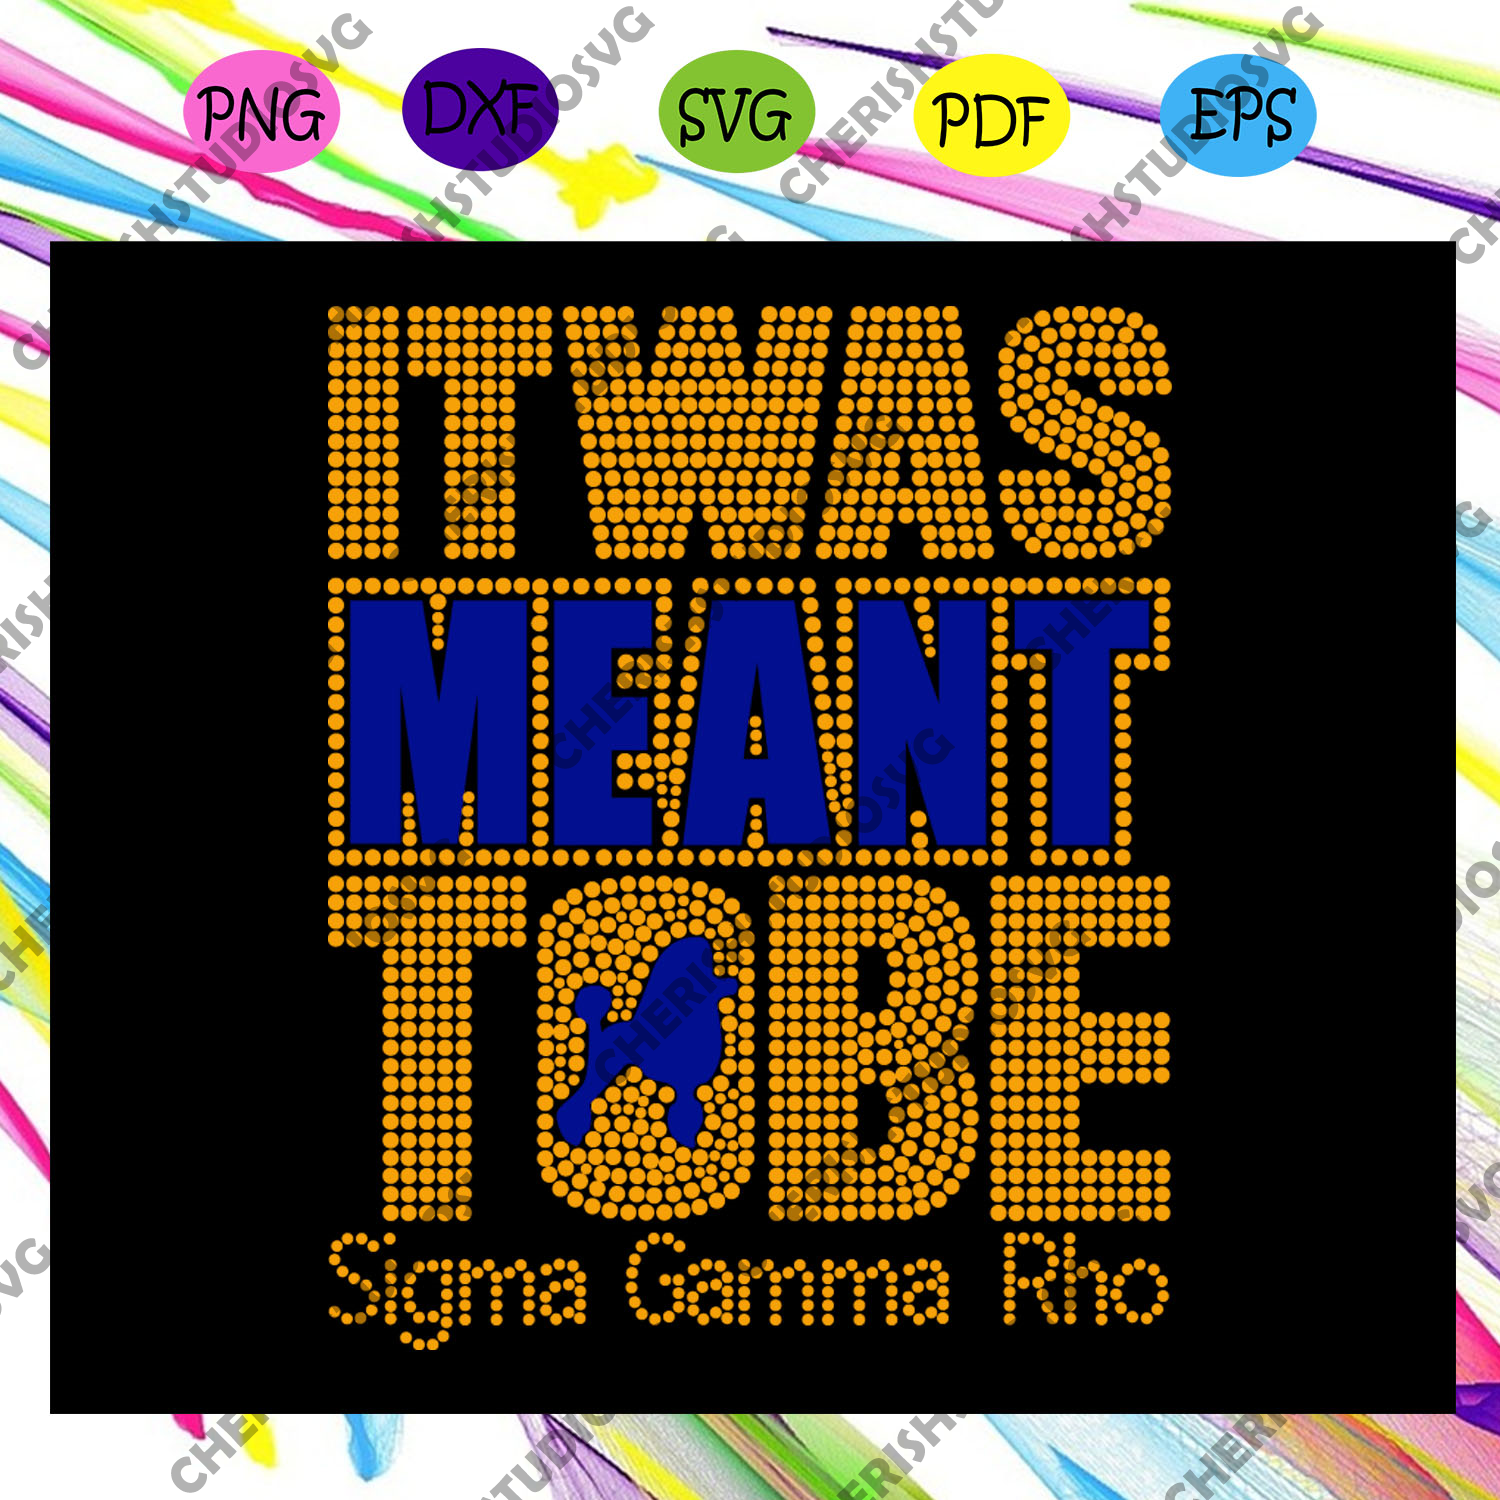 It was meant tobe sigma gamma rho, Sigma Gamma Rho, Sigma Gamma gifts, Sigma Gamma svg, theta sigma shirt,Sigma sorority svg, Sigma sorority gift,sorority svg, sorority gift, Files For Silhouette, Files For Cricut, SVG, DXF, EPS, PNG, Instant Download